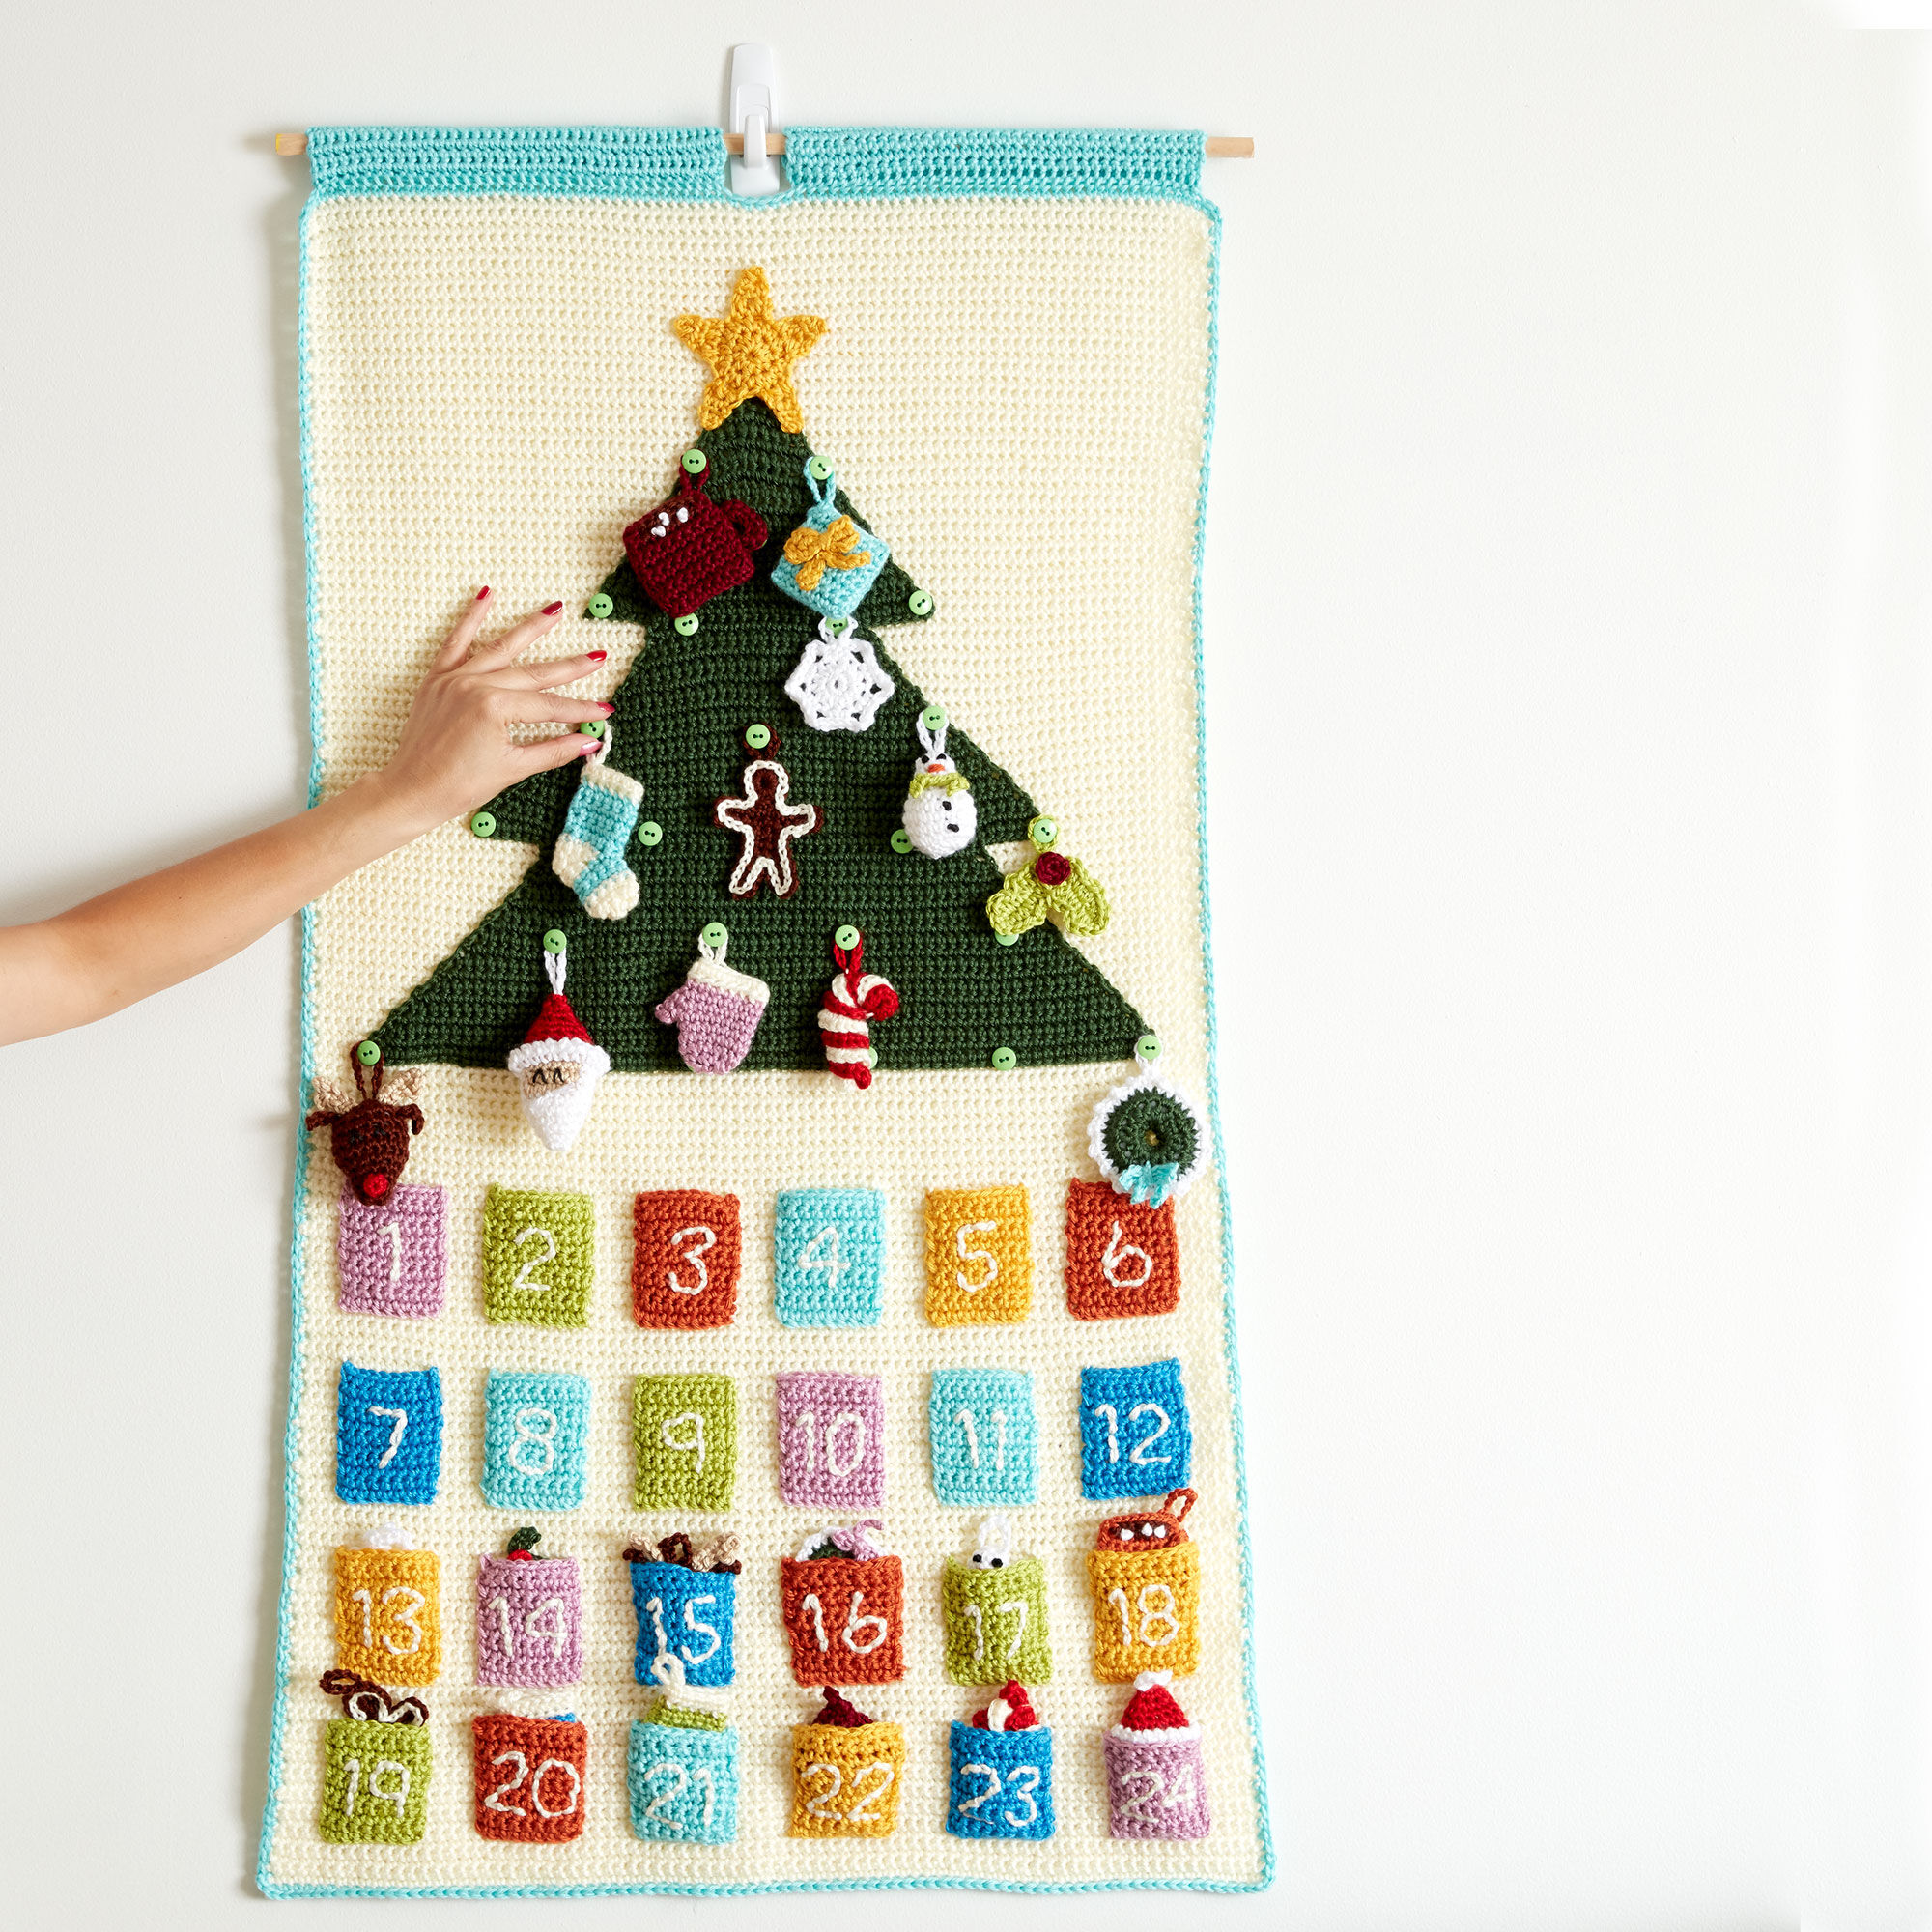 Caron Countdown To Christmas Crochet Advent Calendar | Yarnspirations